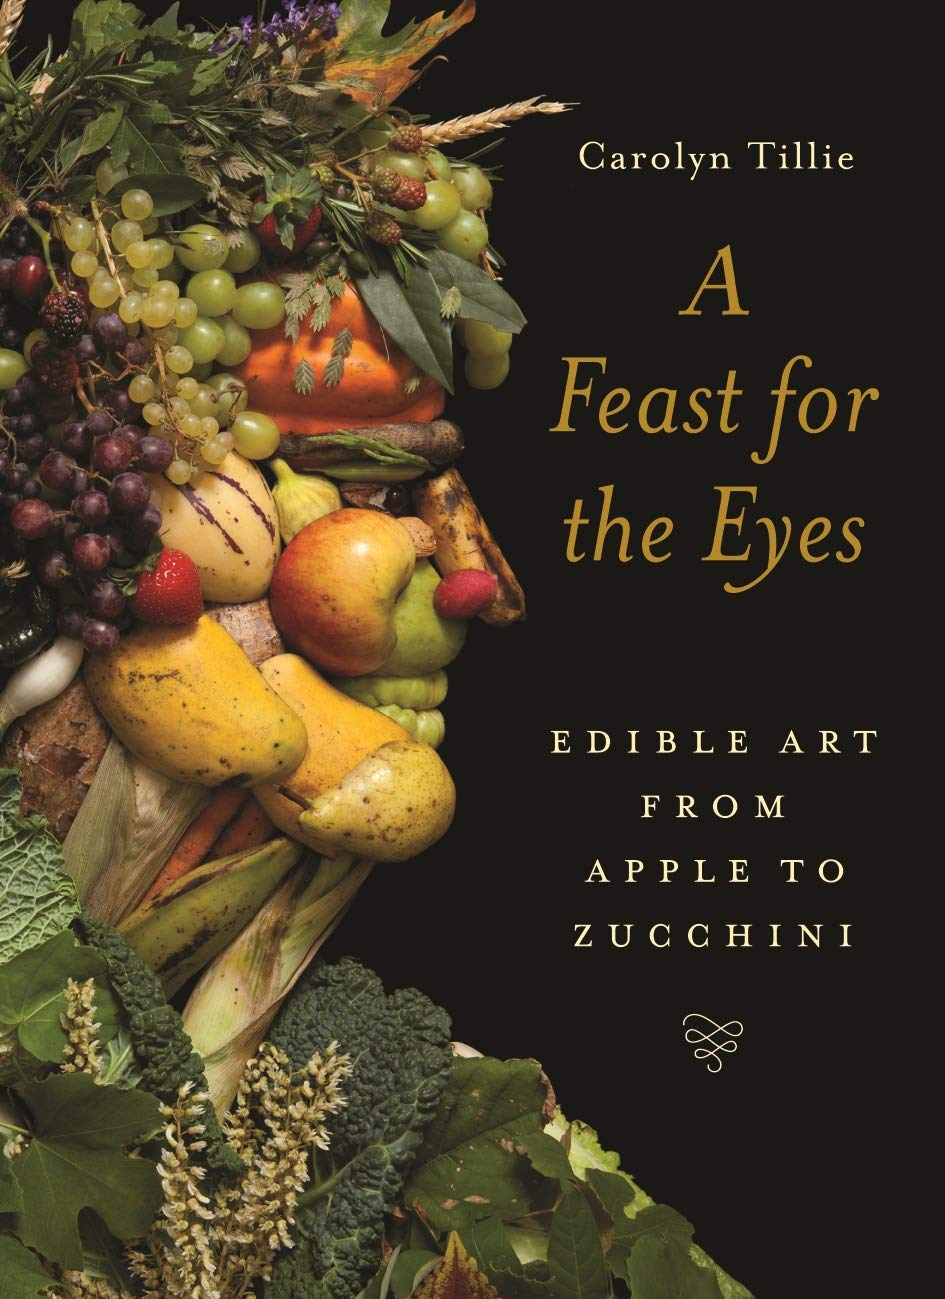 FREE AUTHOR EVENT! Thurs. Aug. 29 • Carolyn Tillie • A Feast for the Eyes: Edible Art from Apple to Zucchini • 6:30-7:30 p.m.